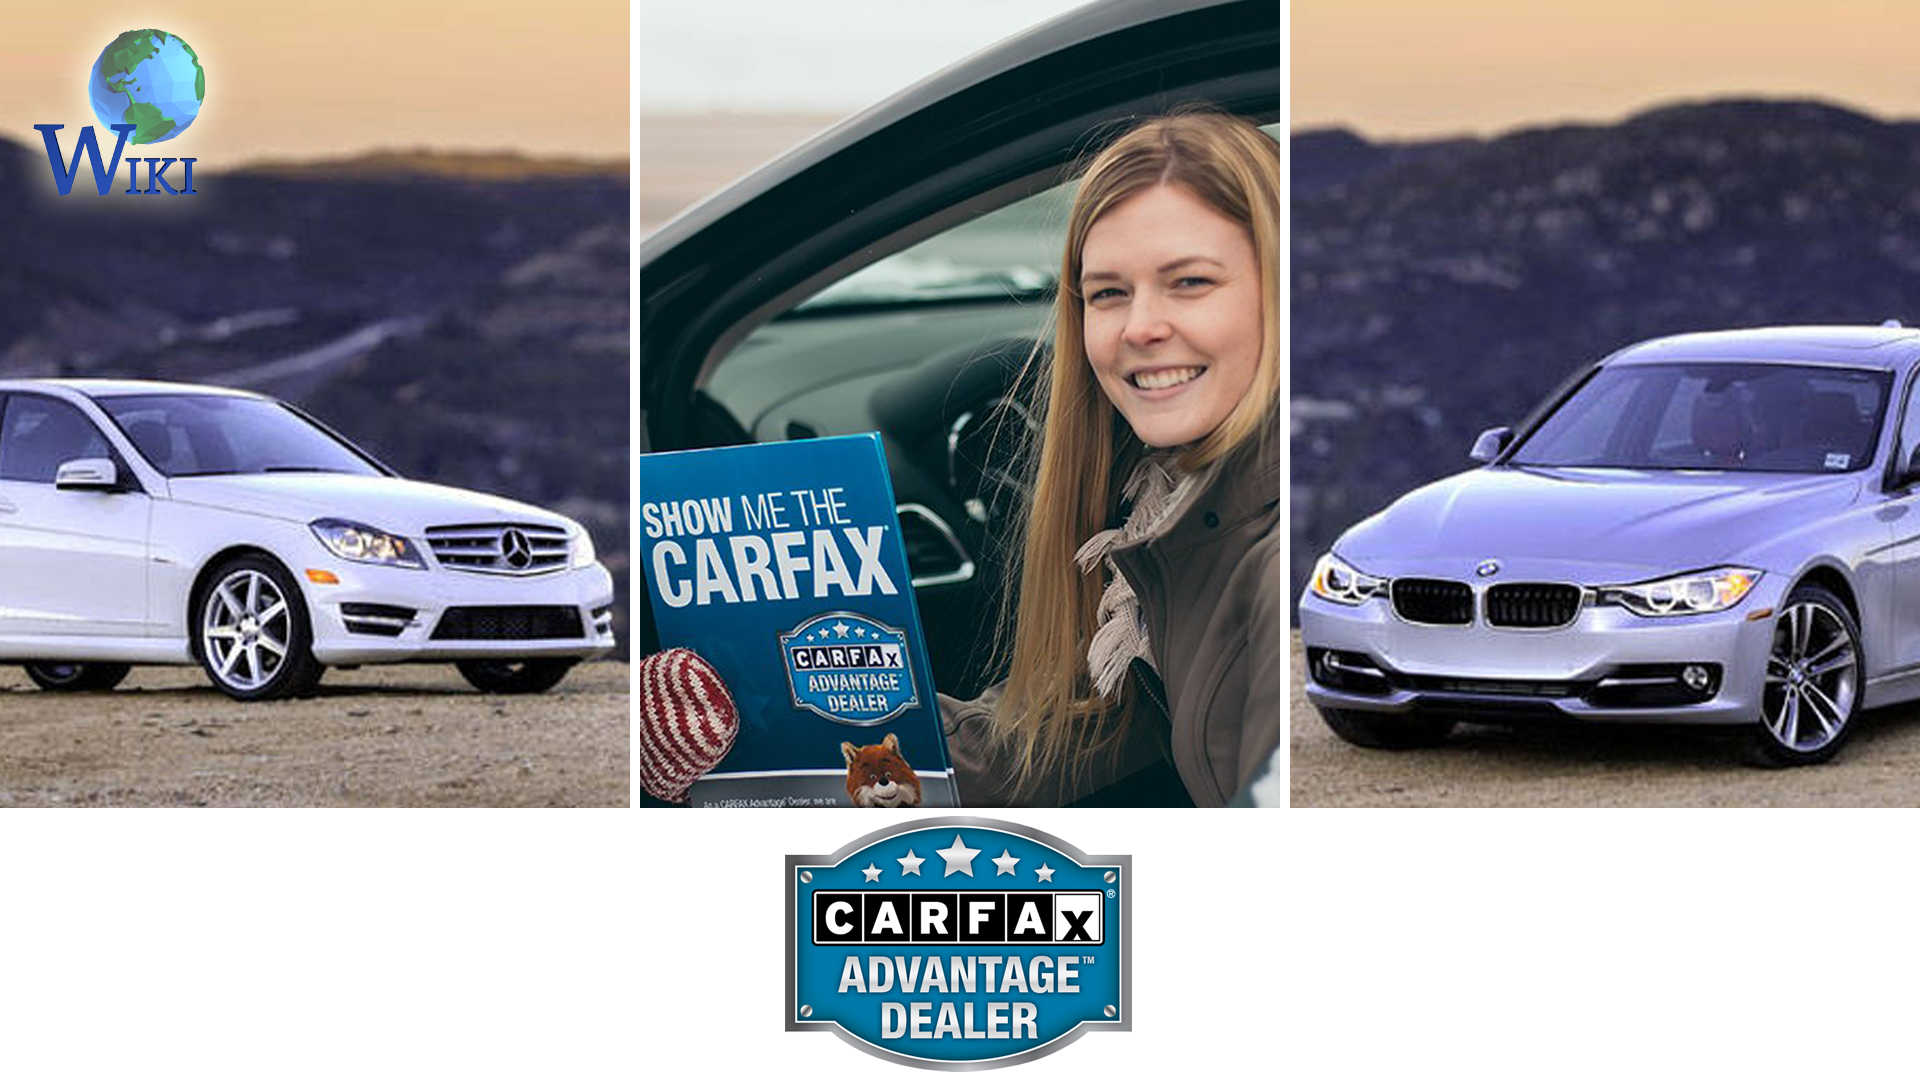 Carfax Dealer Near Me Fresh Carfax for Dealers Review 5 Fast Facts